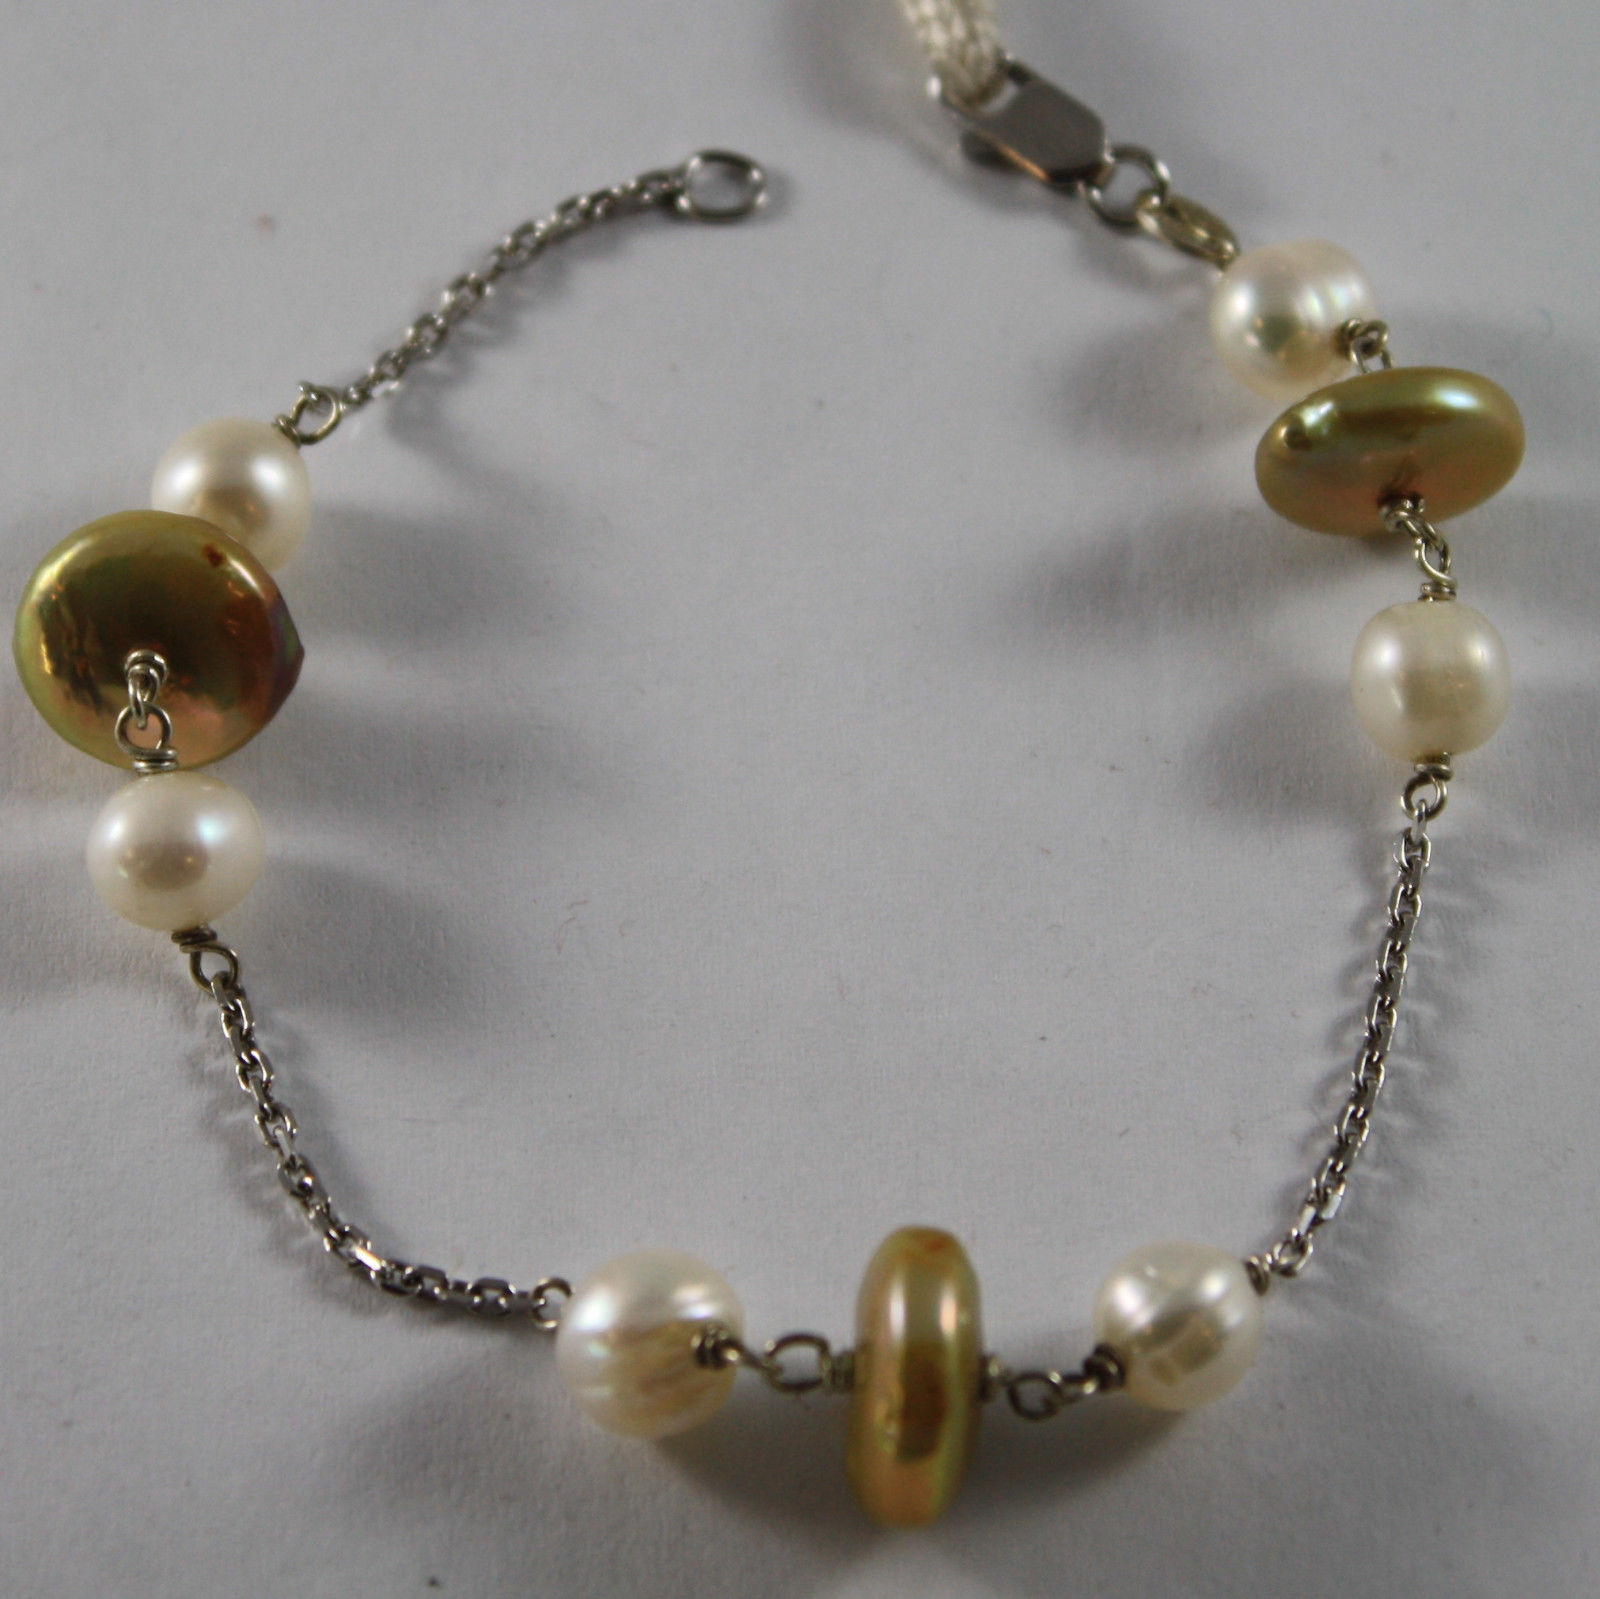 .925 RHODIUM SILVER BRACELET WITH GOLDEN PEARLS FLAT AND WHITE PEARLS